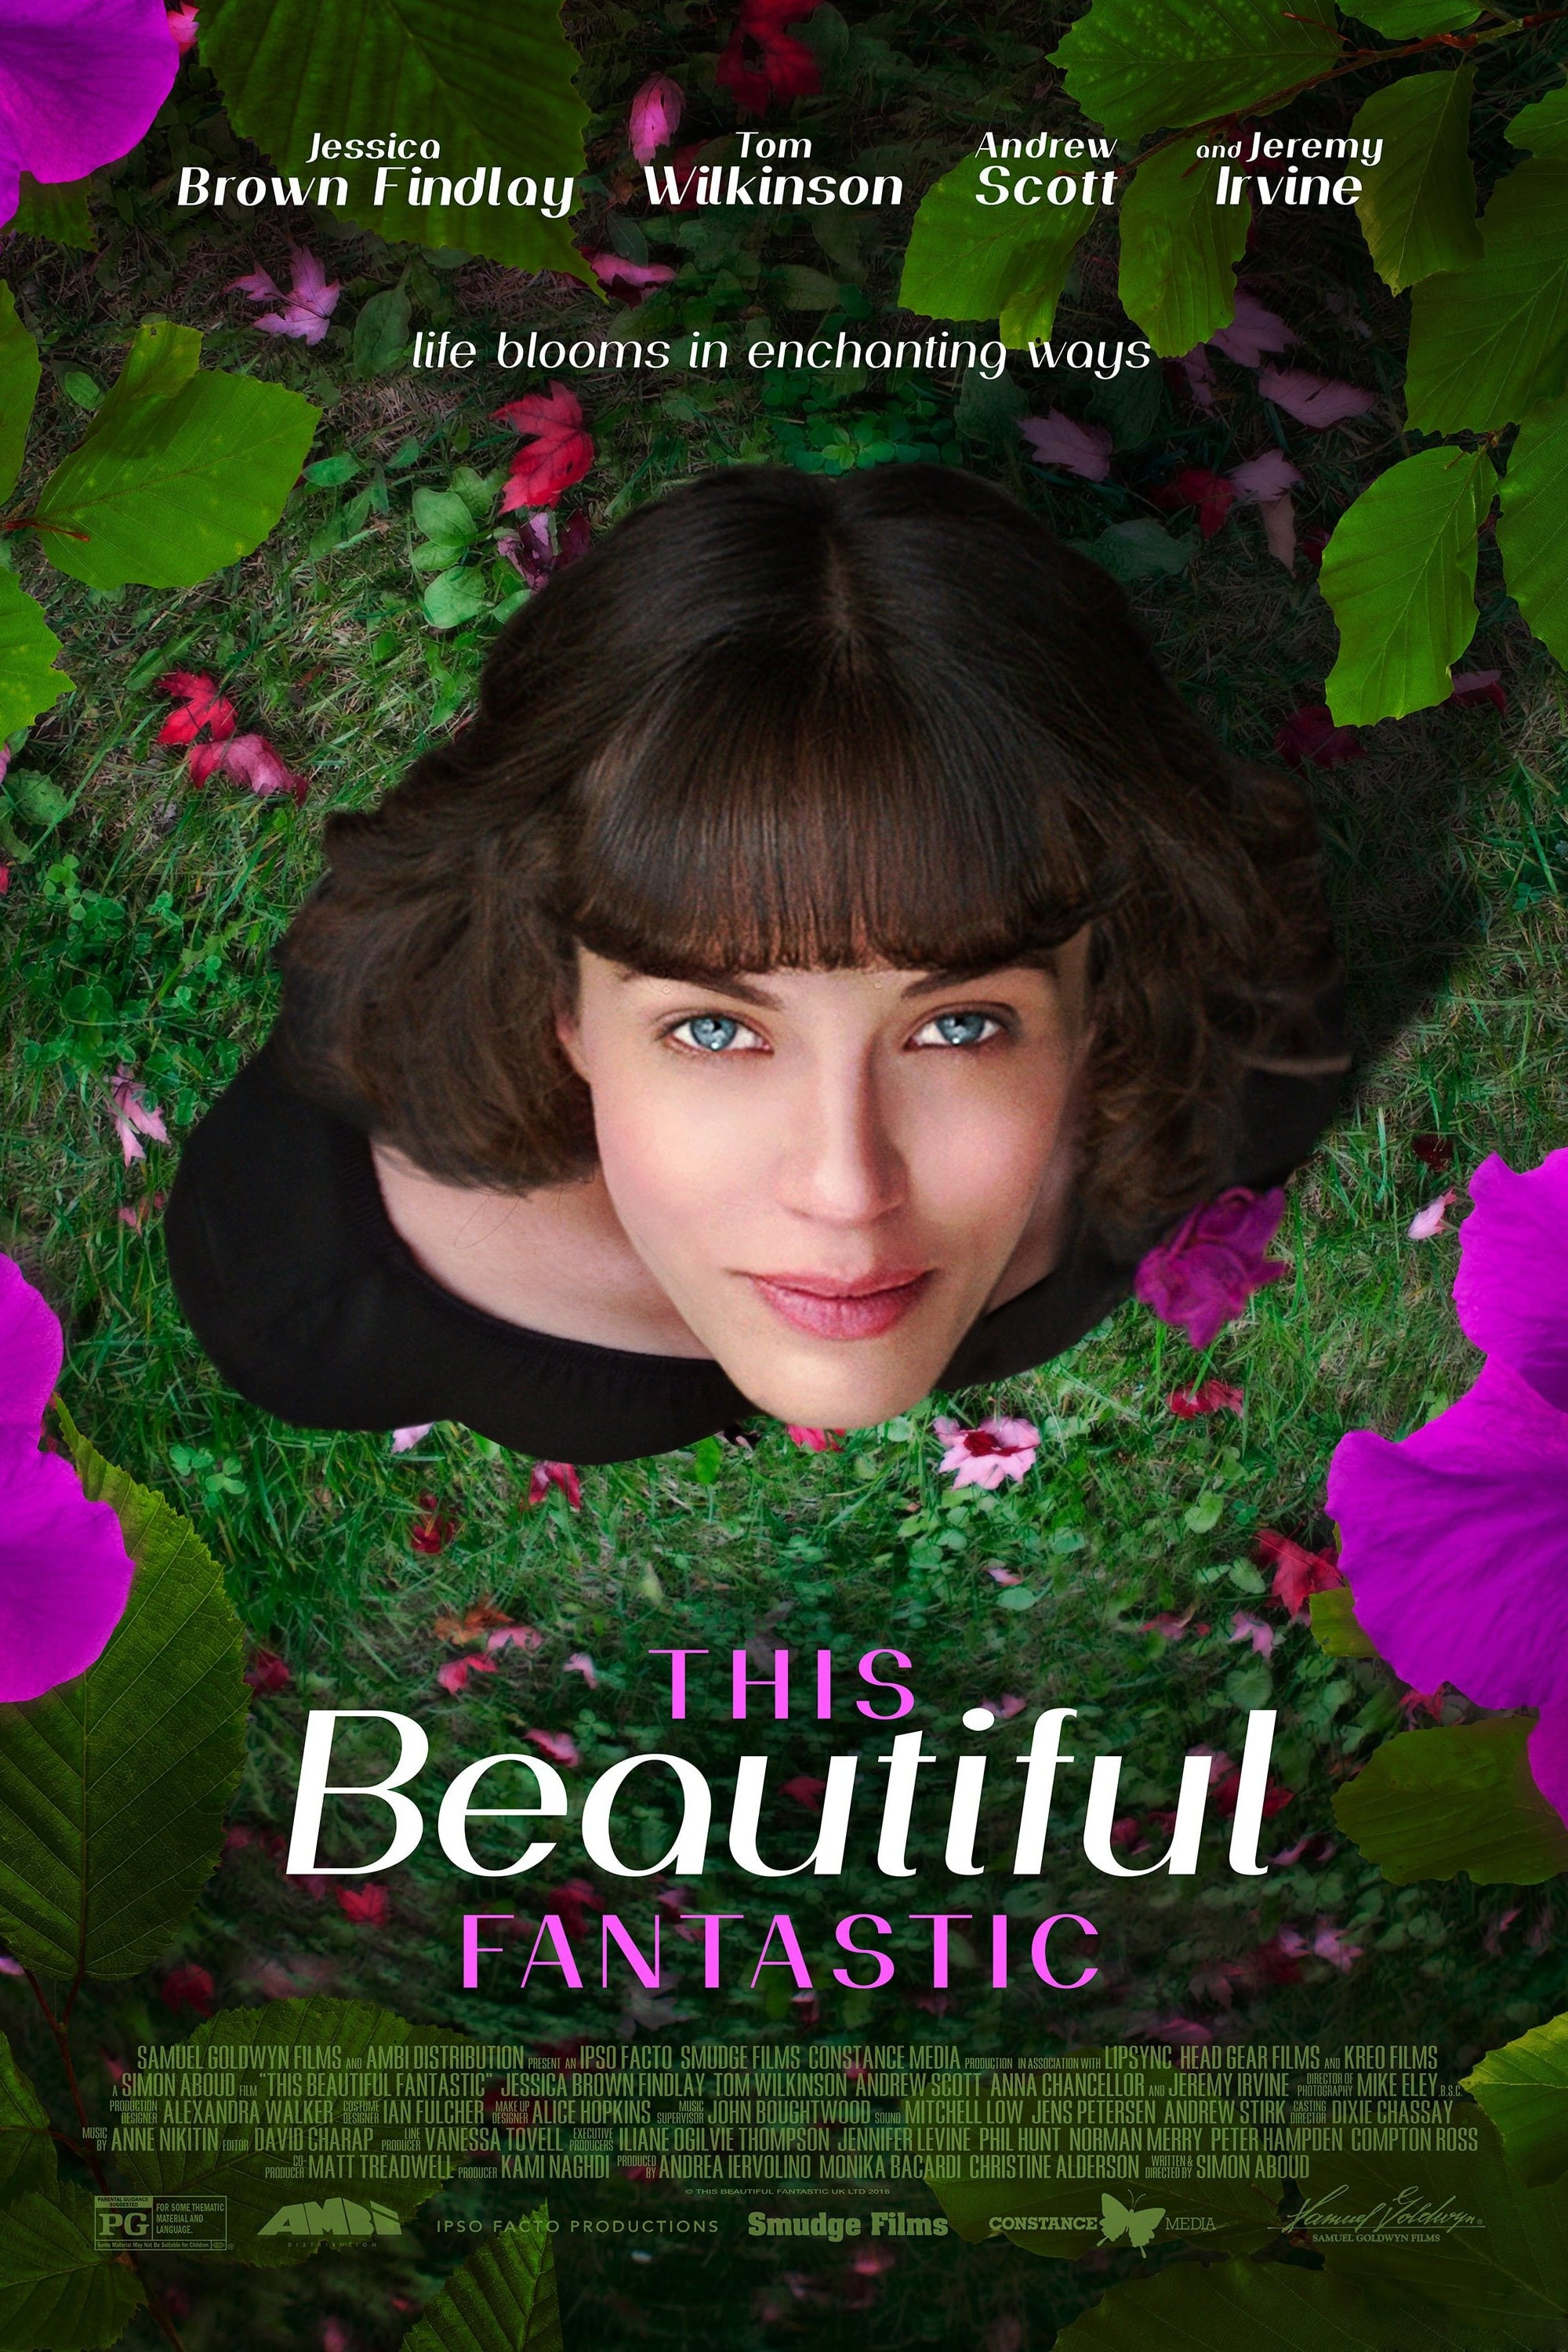 Assistir This Beautiful Fantastic Legendado Online Legendado 1080p